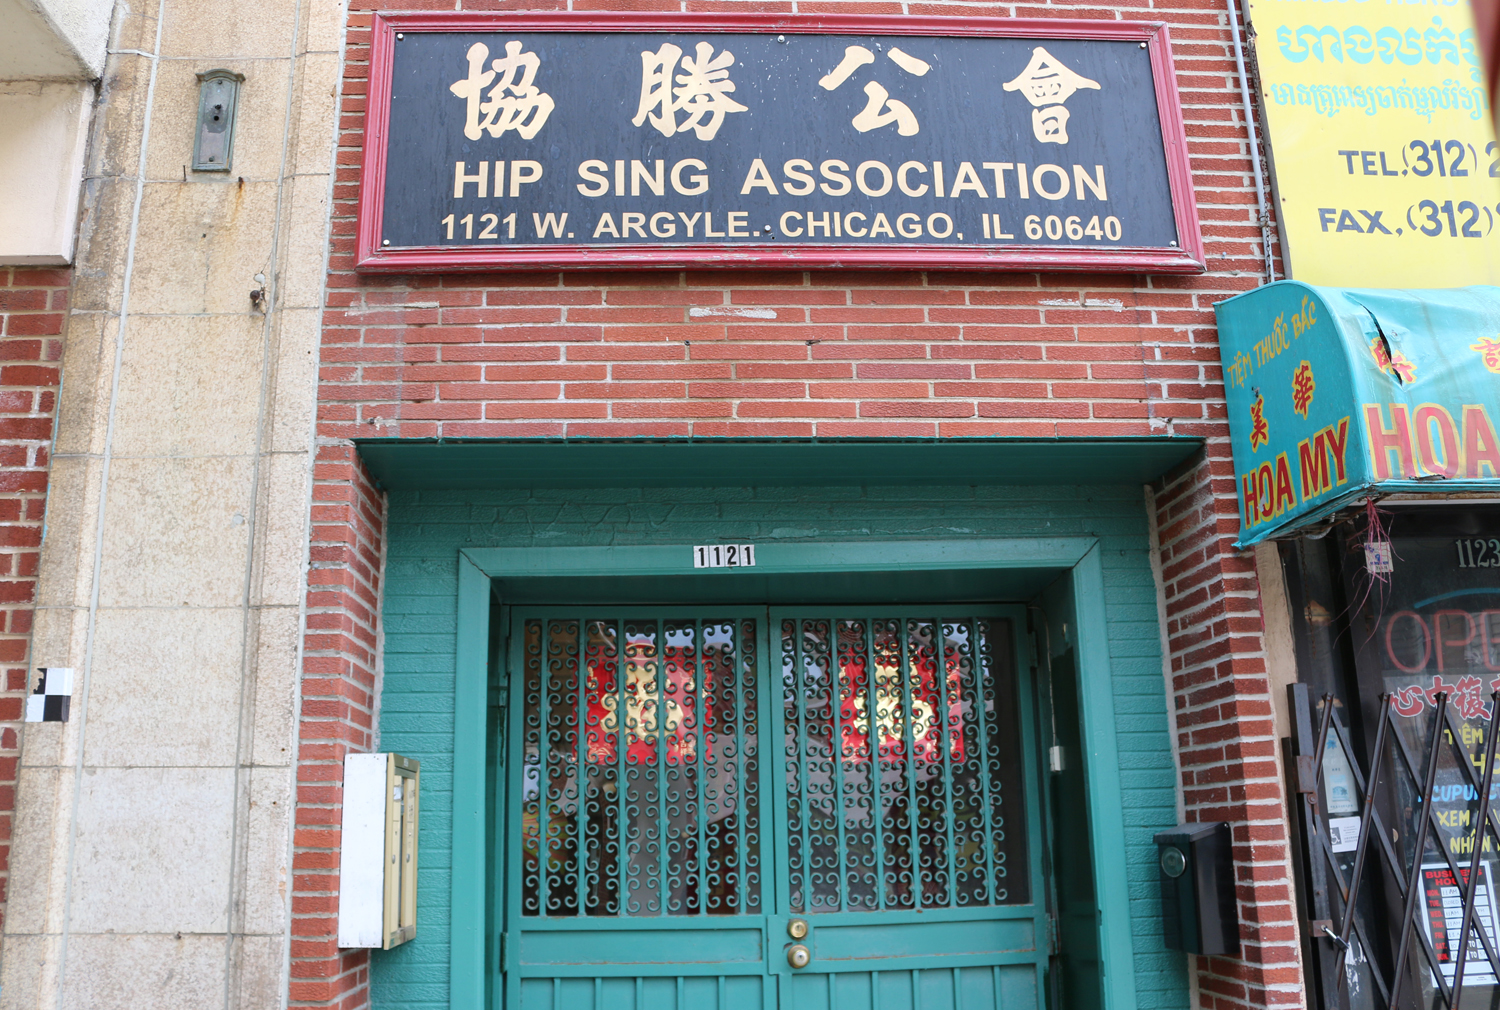 The Hip Sing Association currently has its headquarters in Chicago's Uptown neighborhood. Monica Eng's uncle George, who was a Hip Sing elder, attended meetings at this location next to the Argyle El stop. (Bashirah Mack/WBEZ)